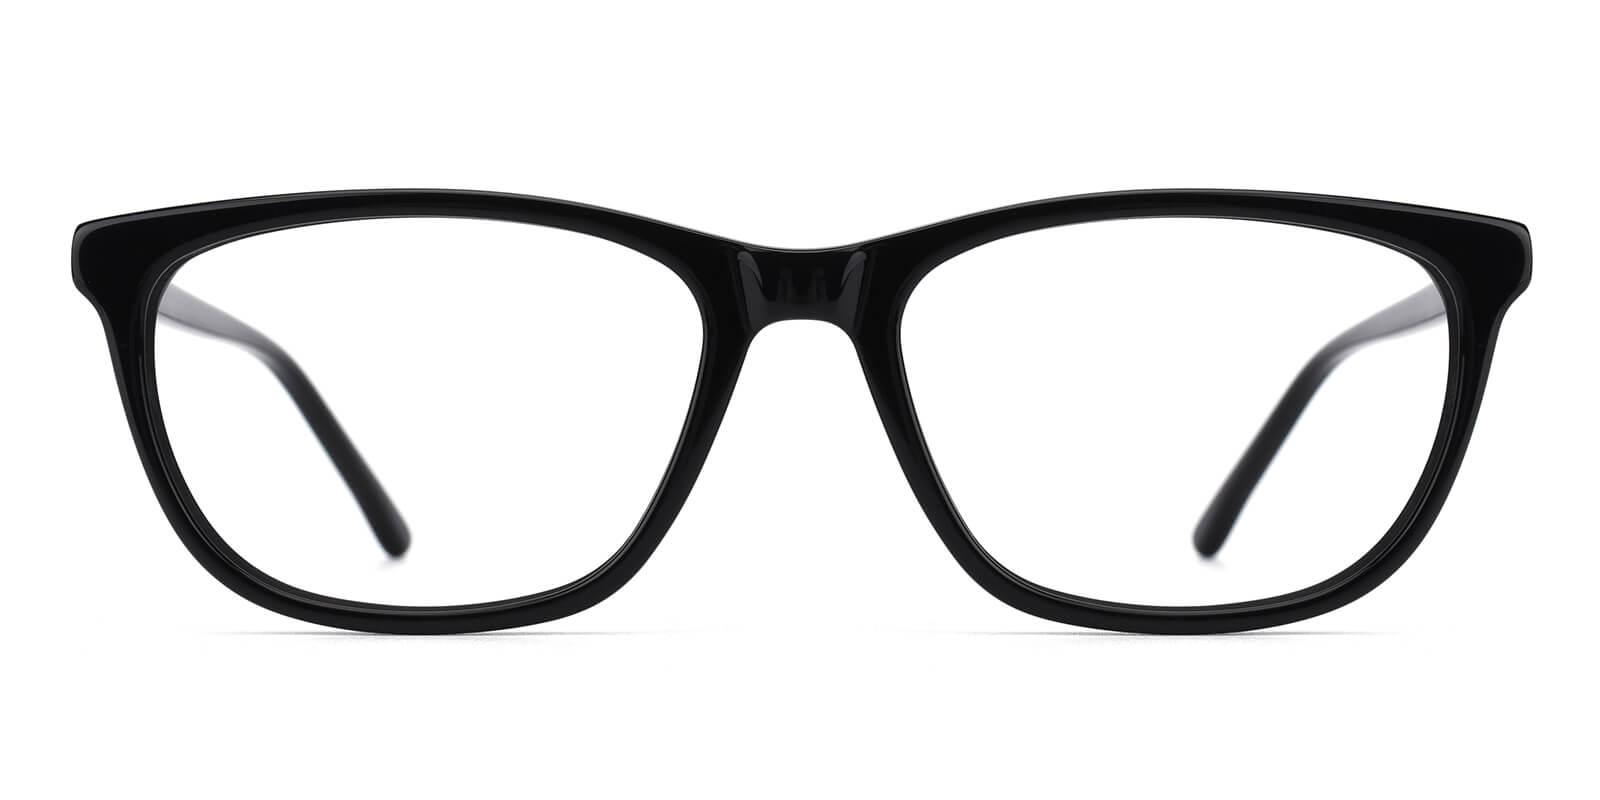 Emblem-Black-Square / Cat-Acetate-Eyeglasses-additional2